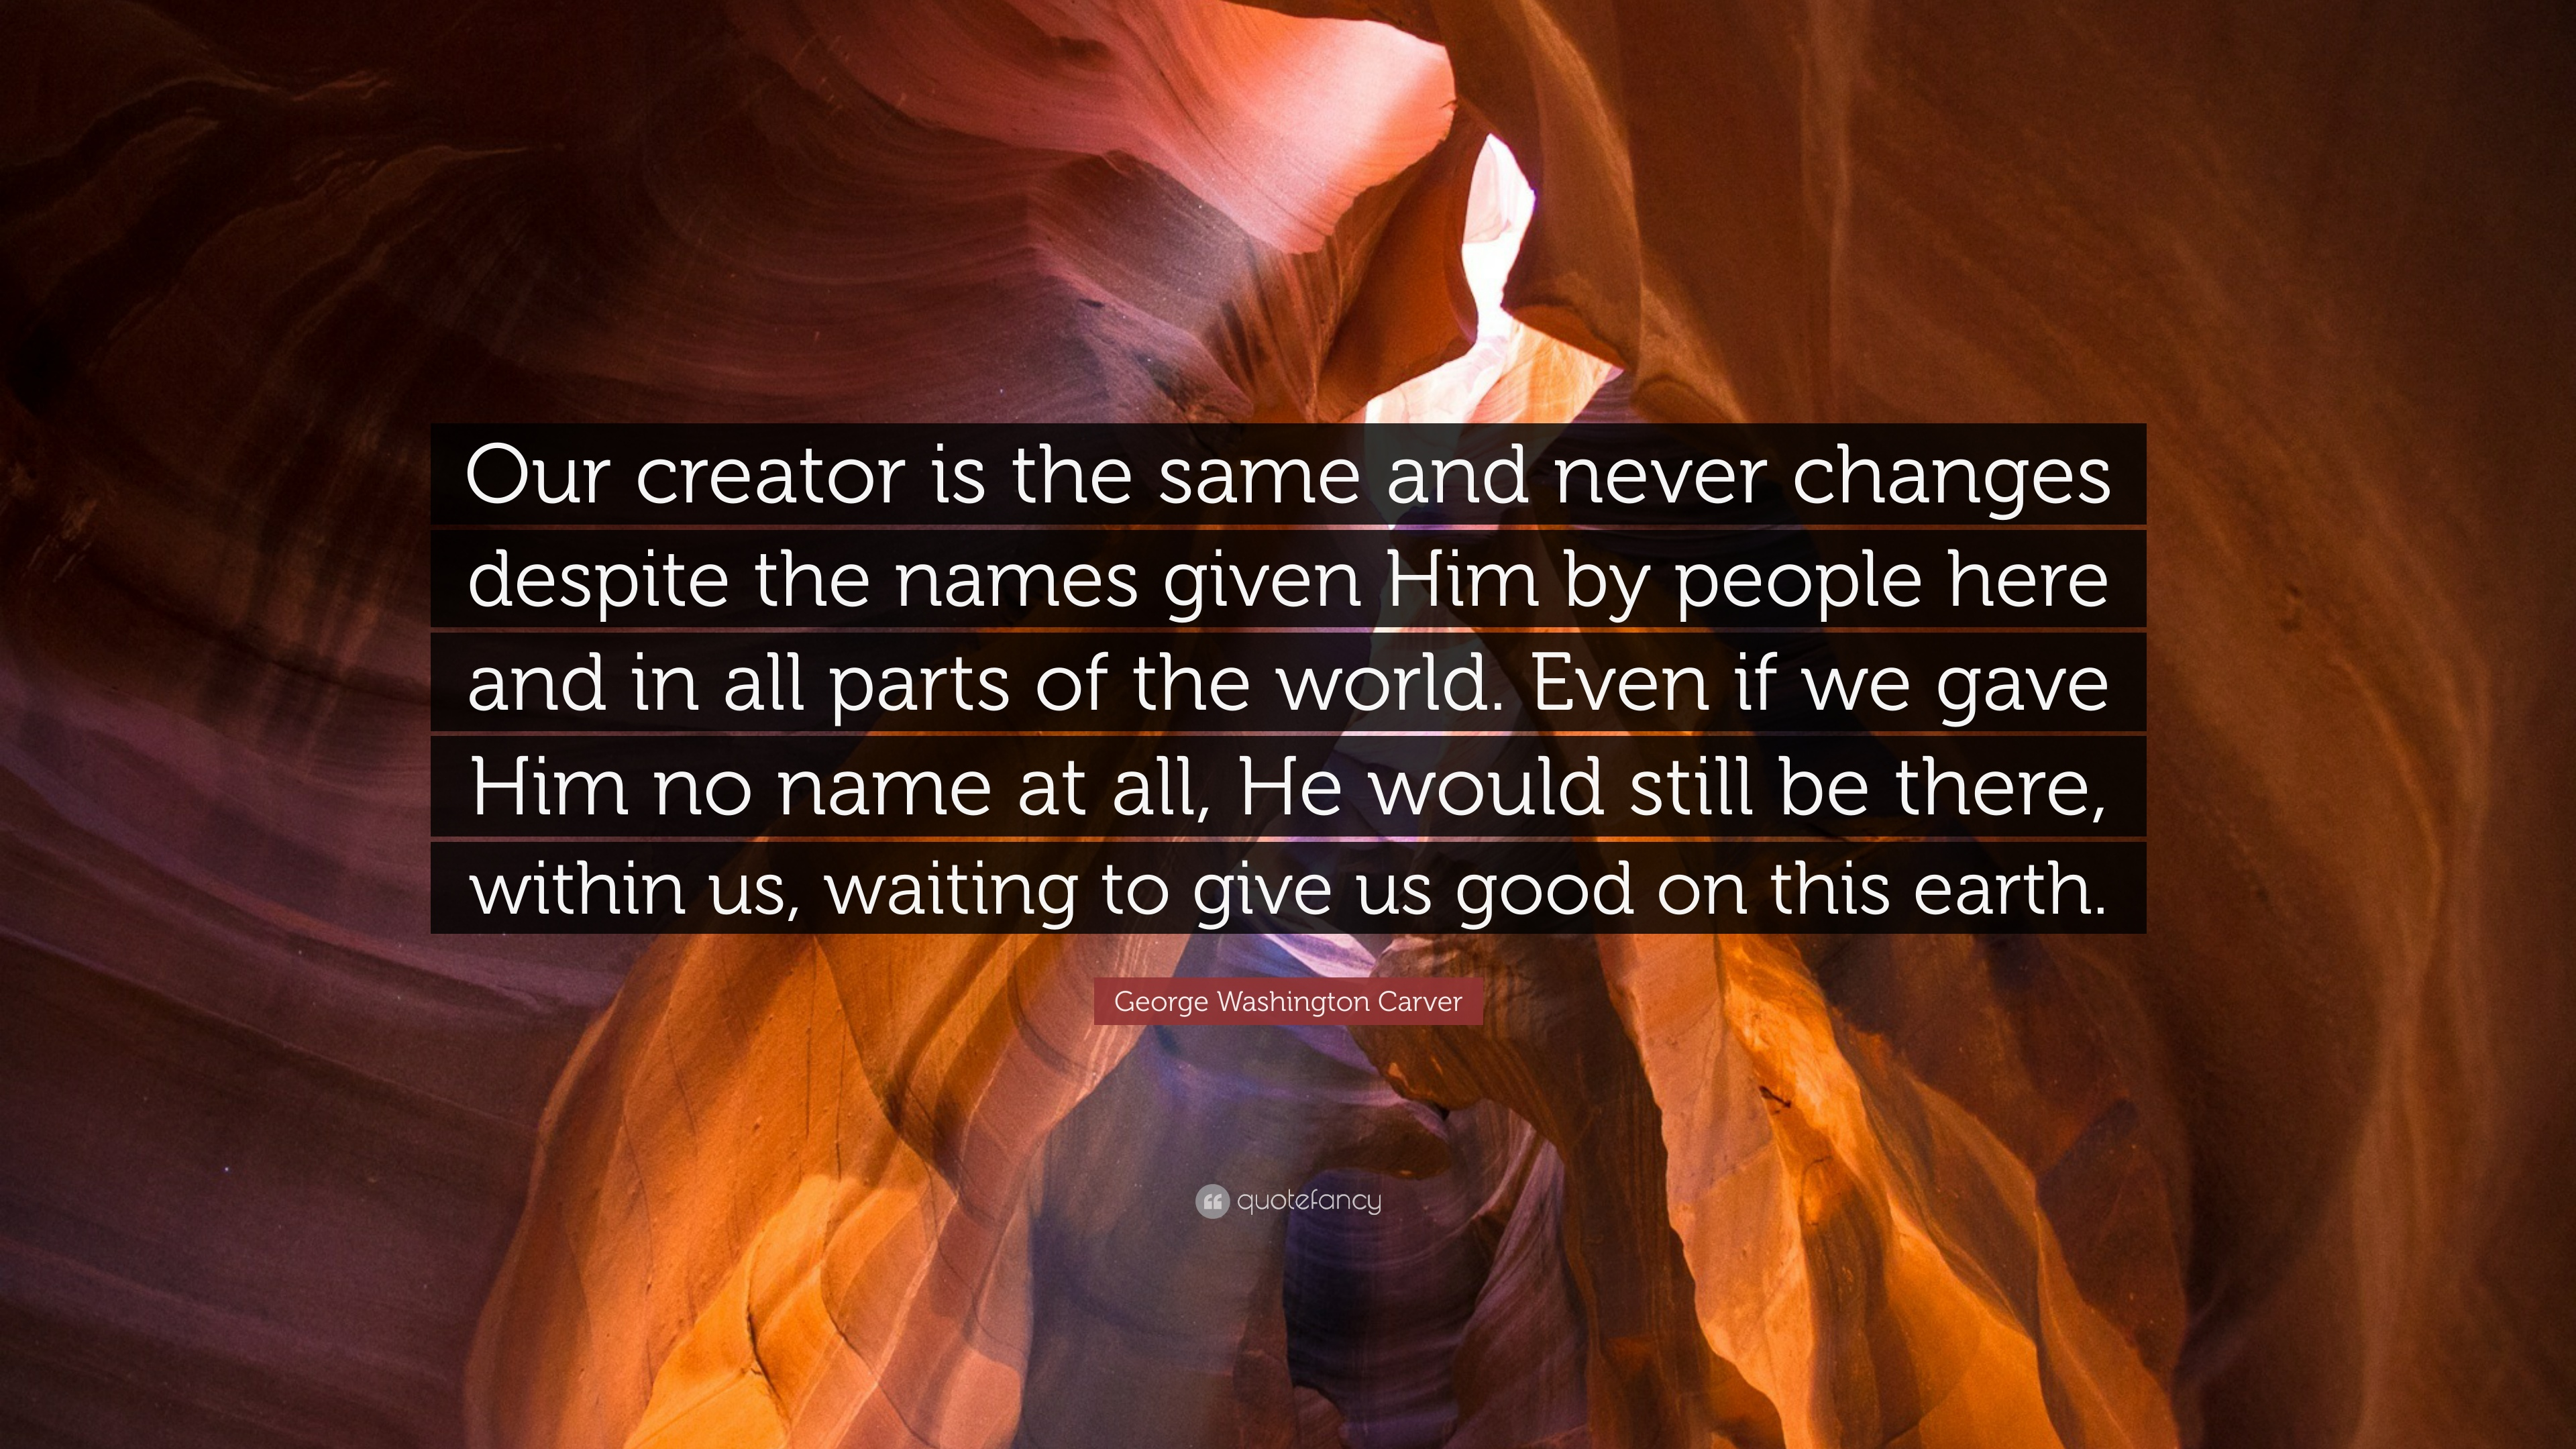 george washington carver quote u201cour creator is the same and never